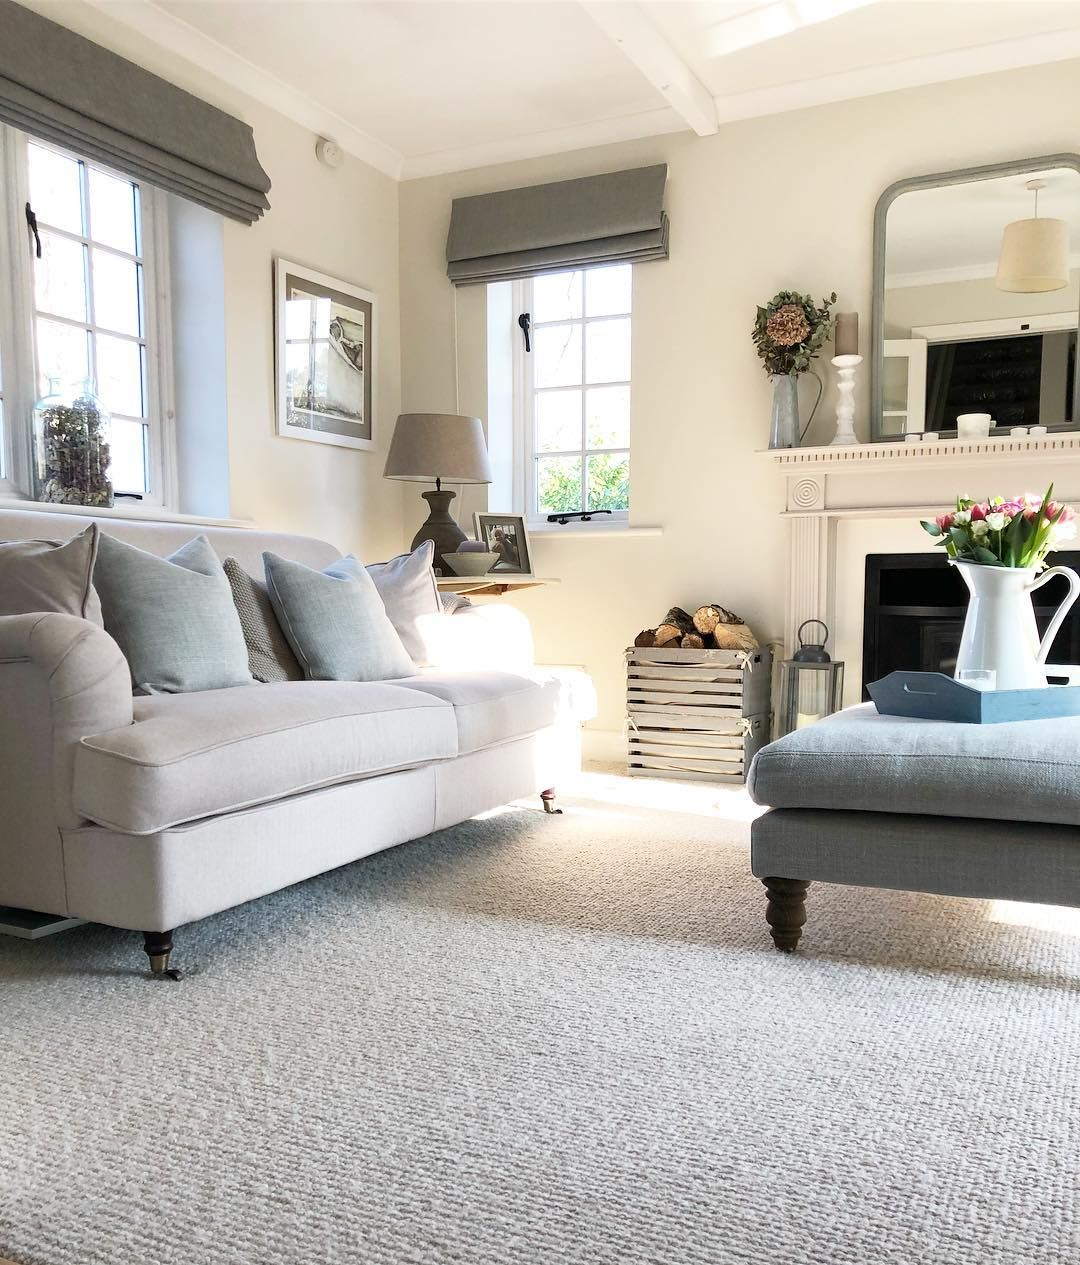 Zoe On Instagram Yes To Days Like These Sunlight Sunshinethroughmywindow Spring Countr Cosy Living Room Blue Living Room Decor Home Living Room